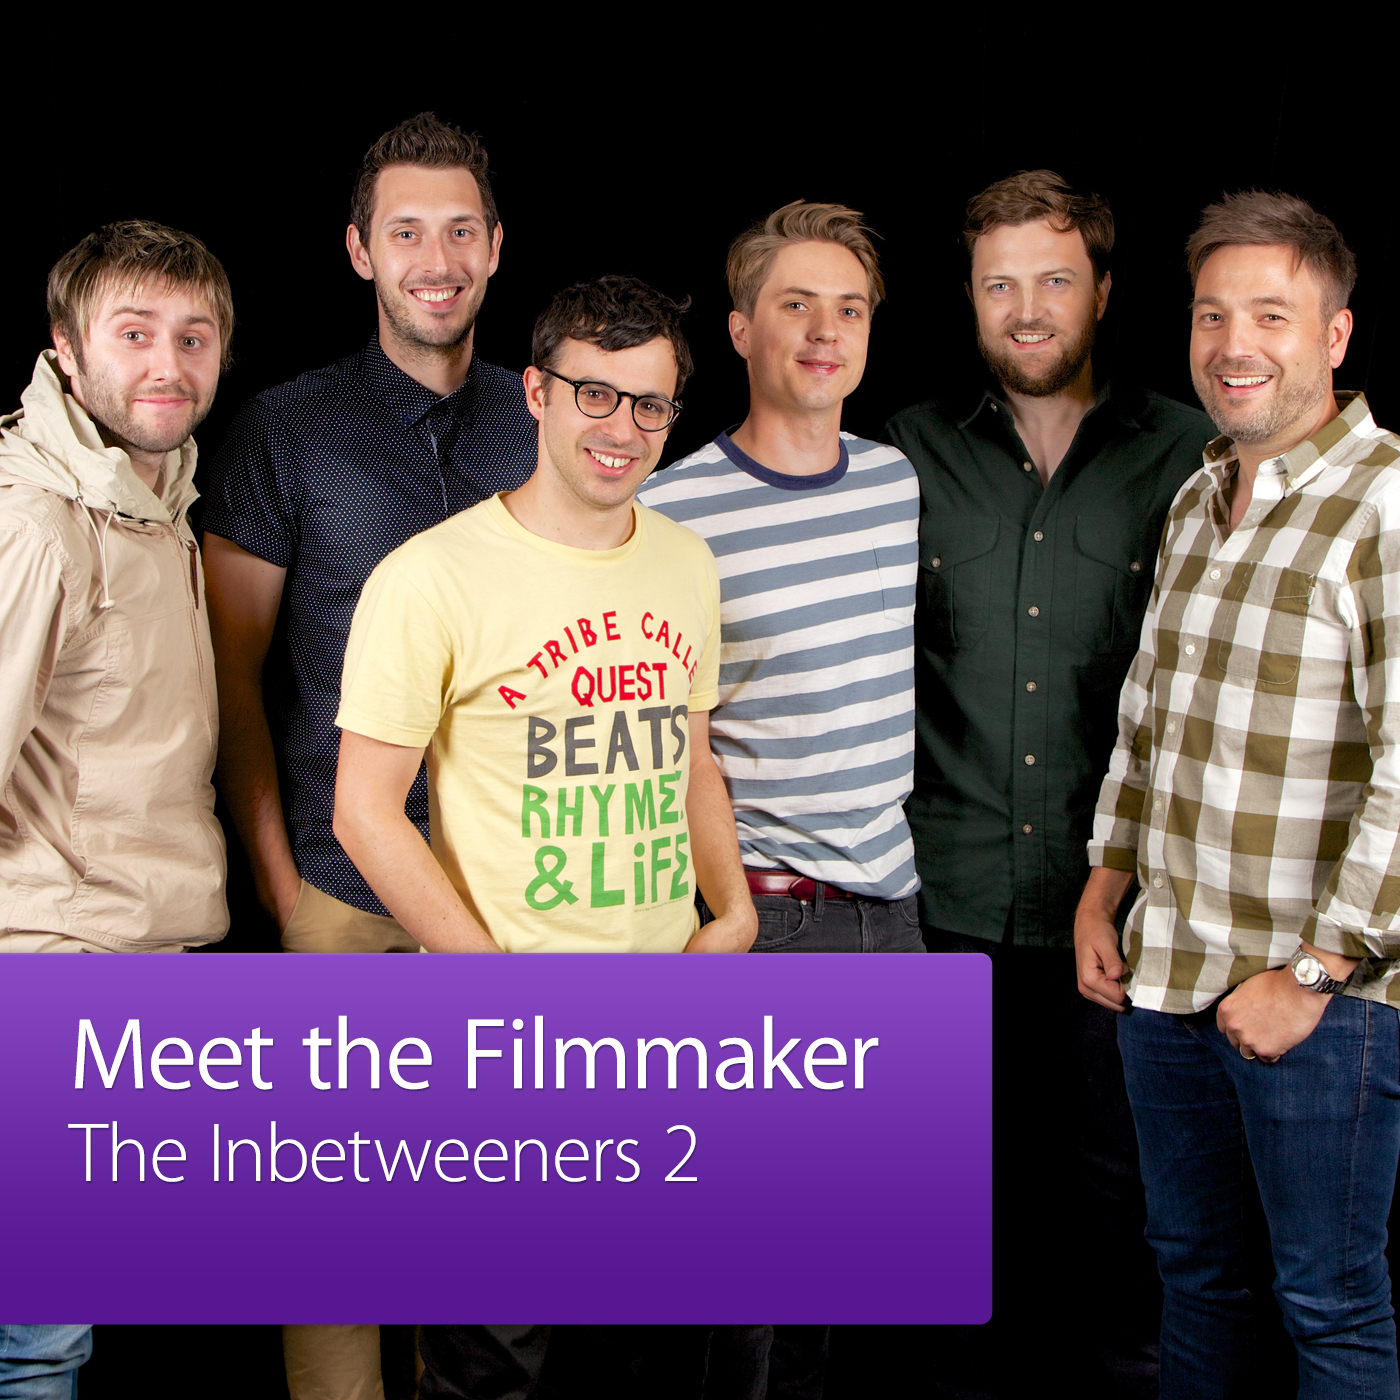 The Inbetweeners 2: Meet the Filmmaker